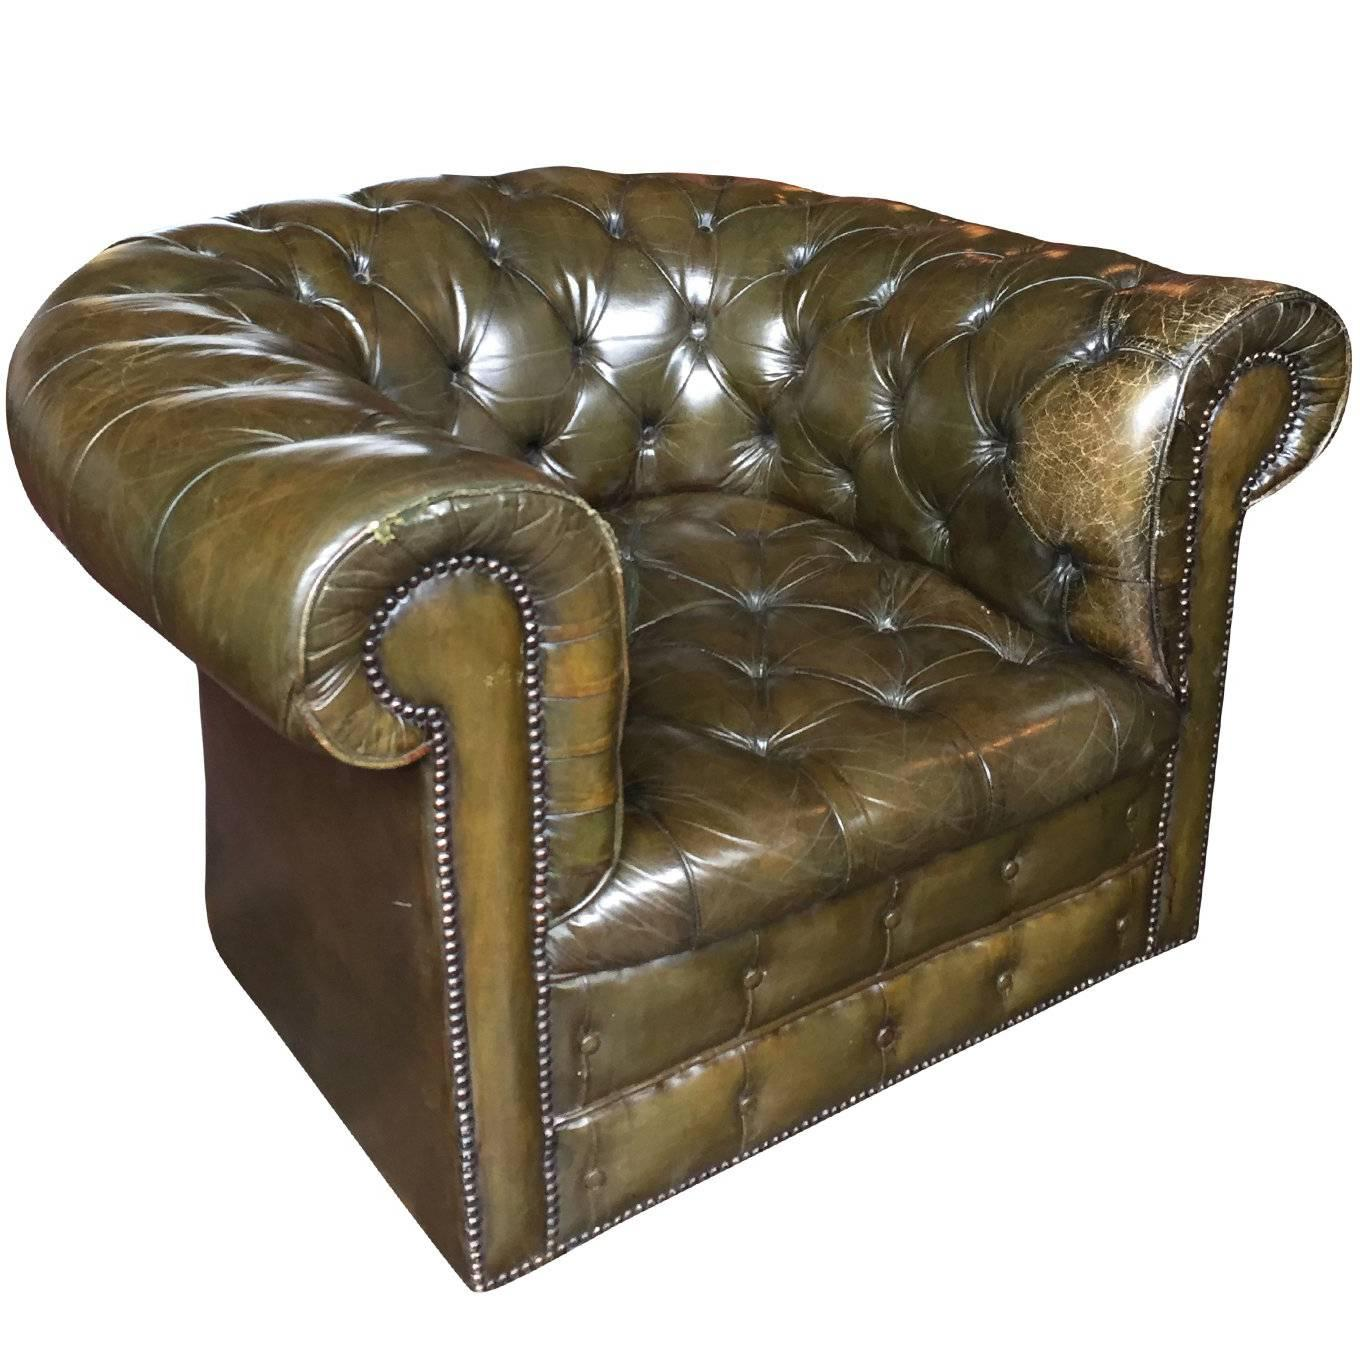 1930s English Olive Green Chesterfield Club Chair For Sale